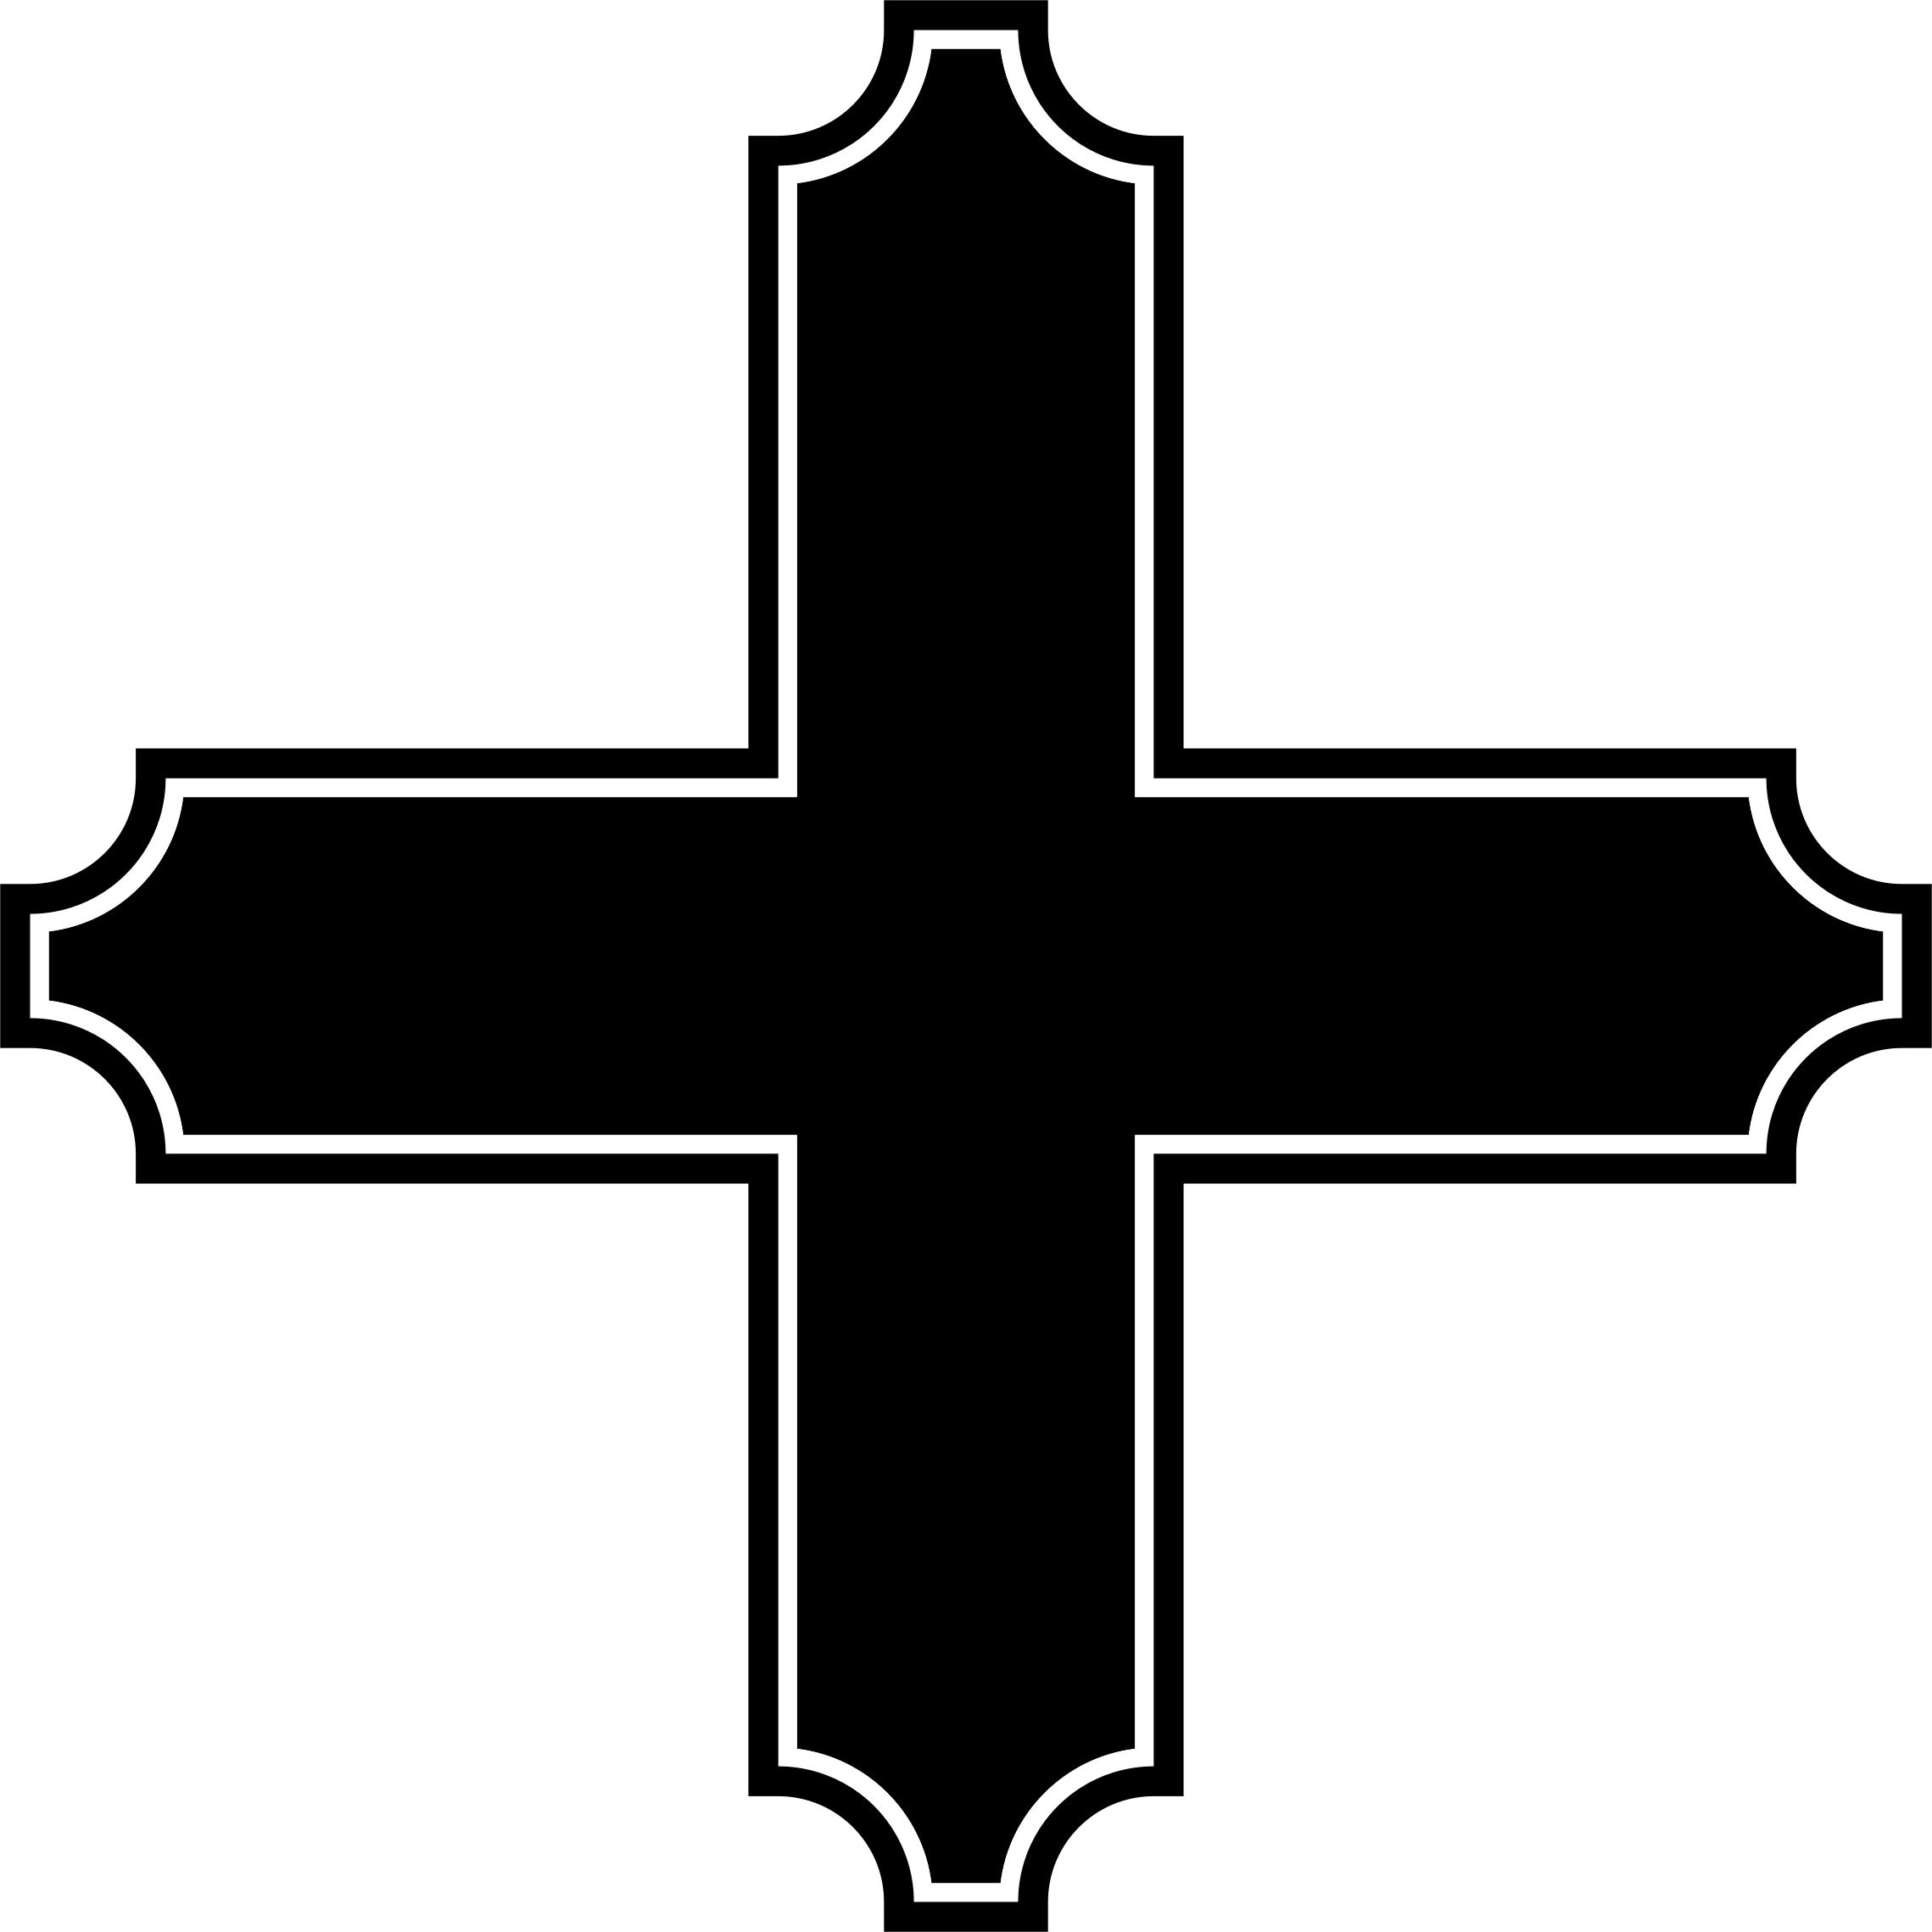 Simple Cross 3 by GDJ